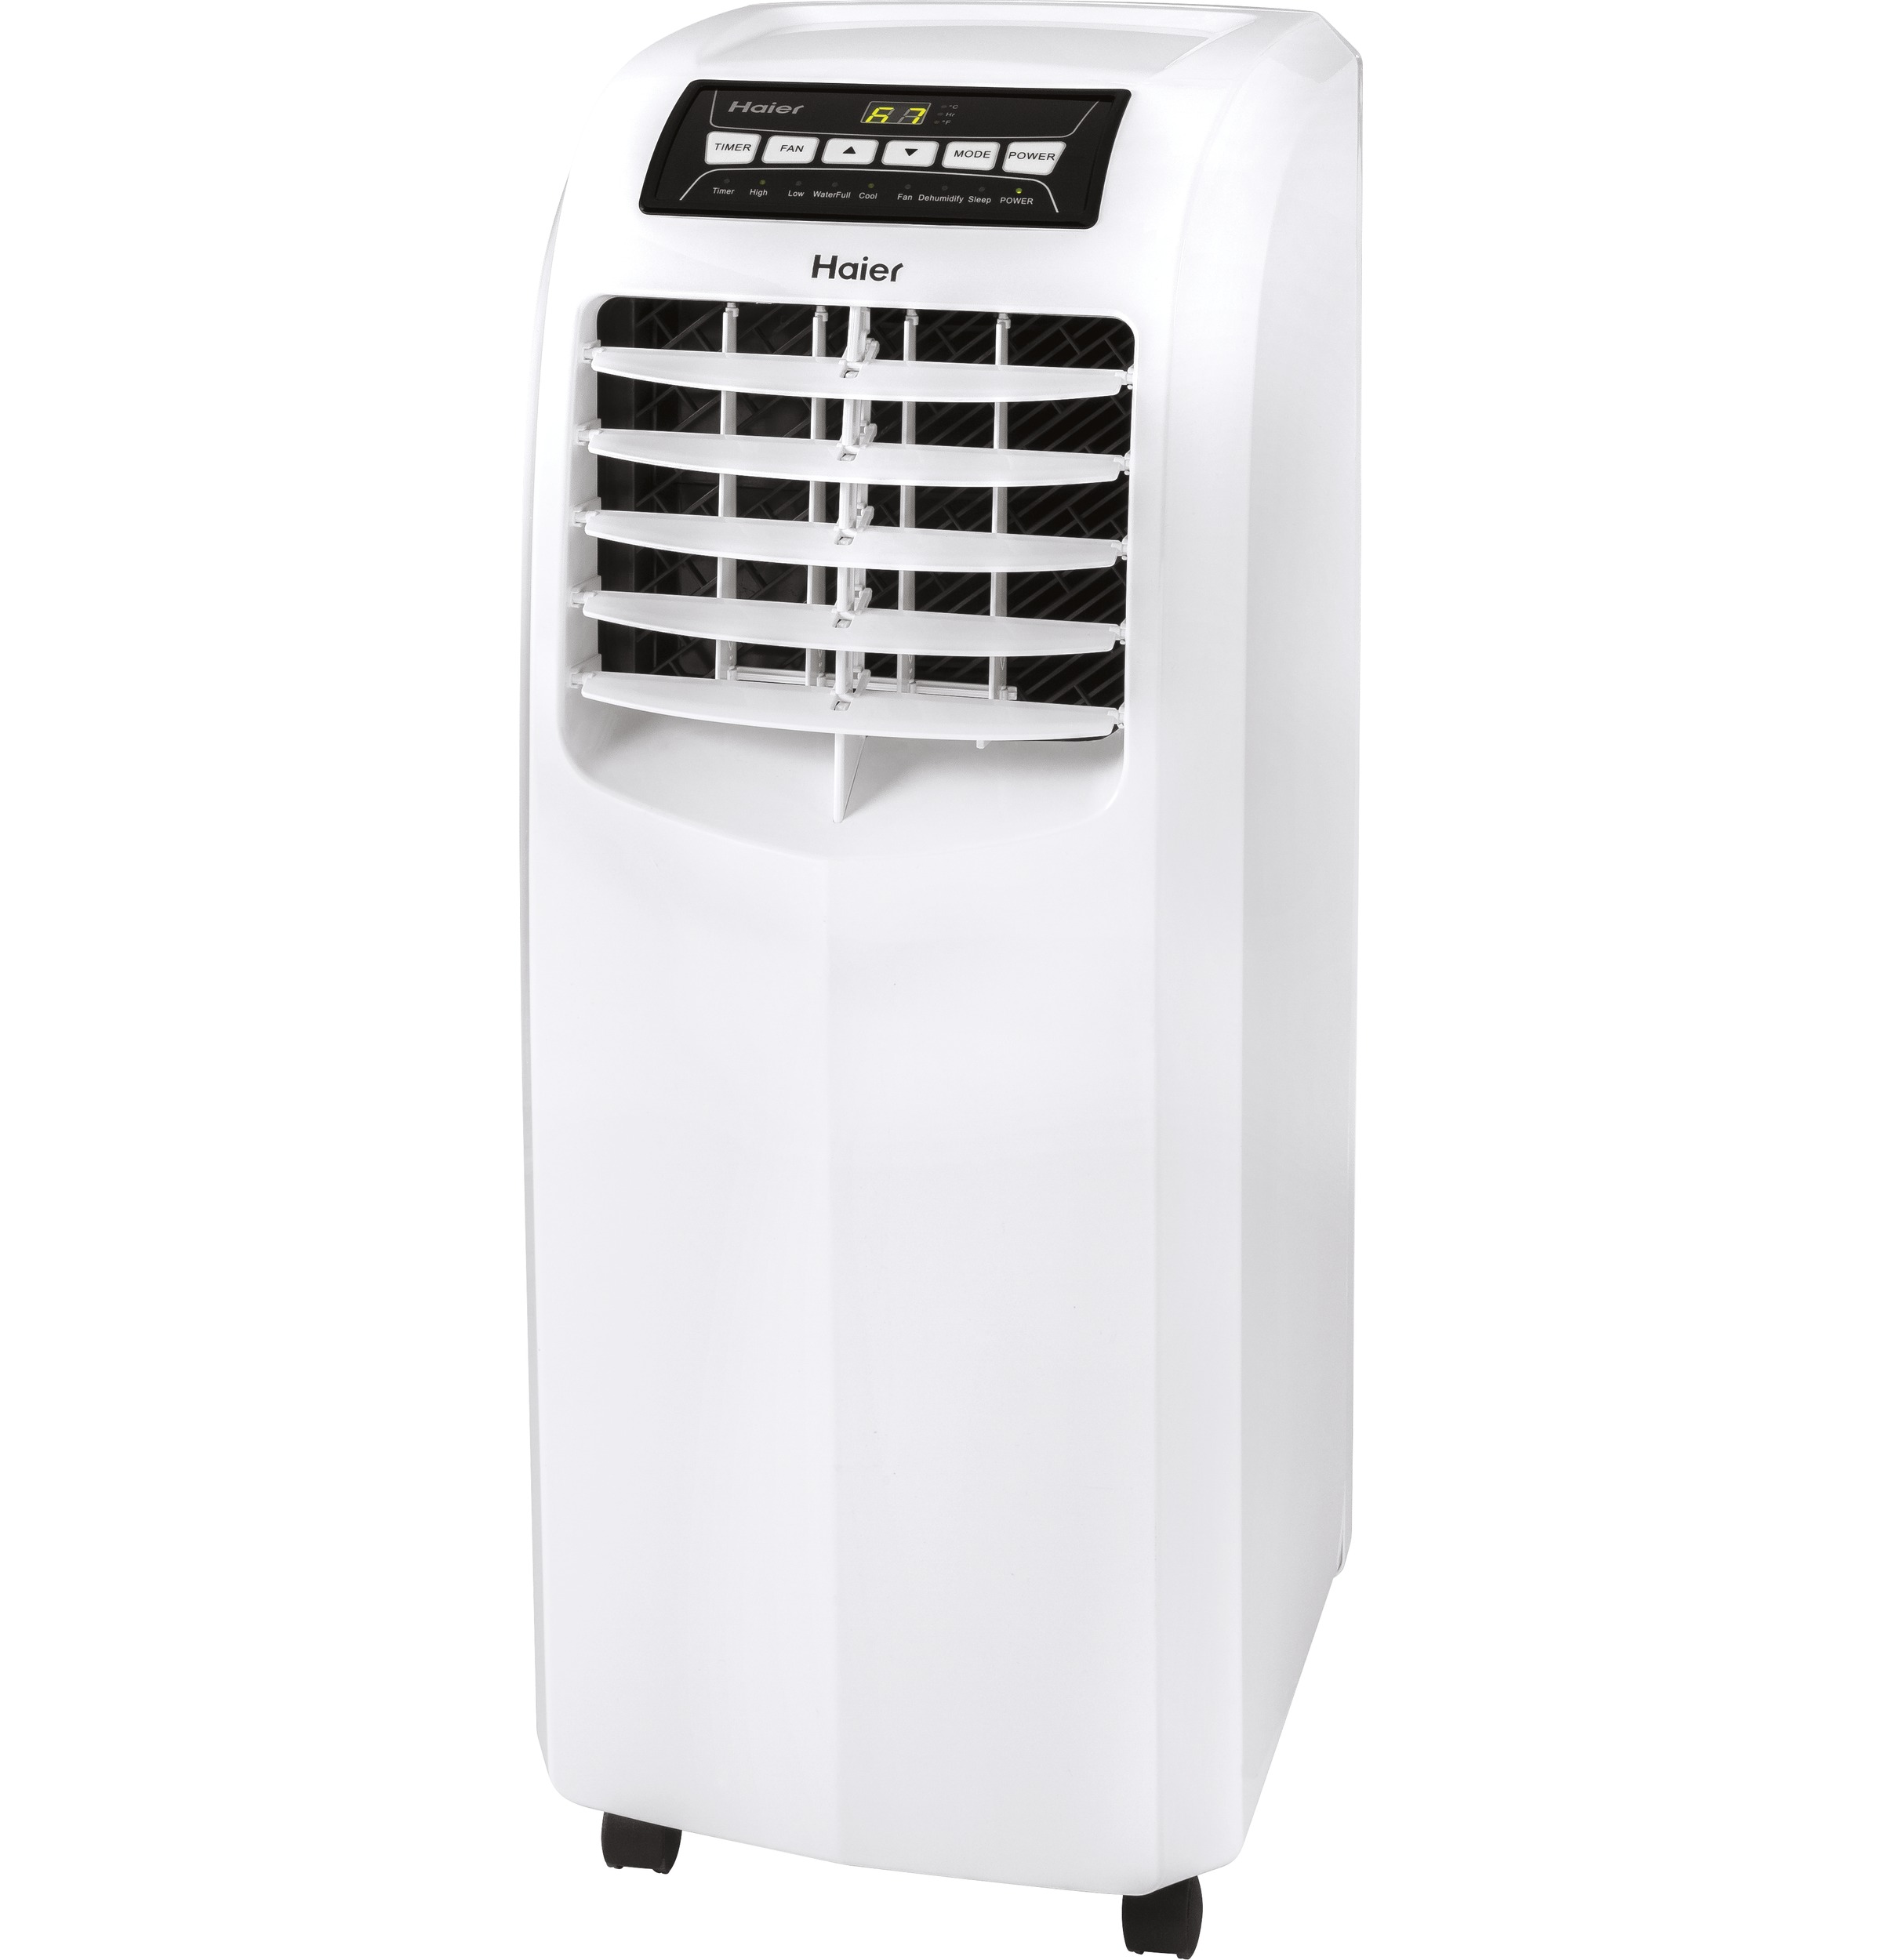 haier portable air conditioner manual hprb07xc7